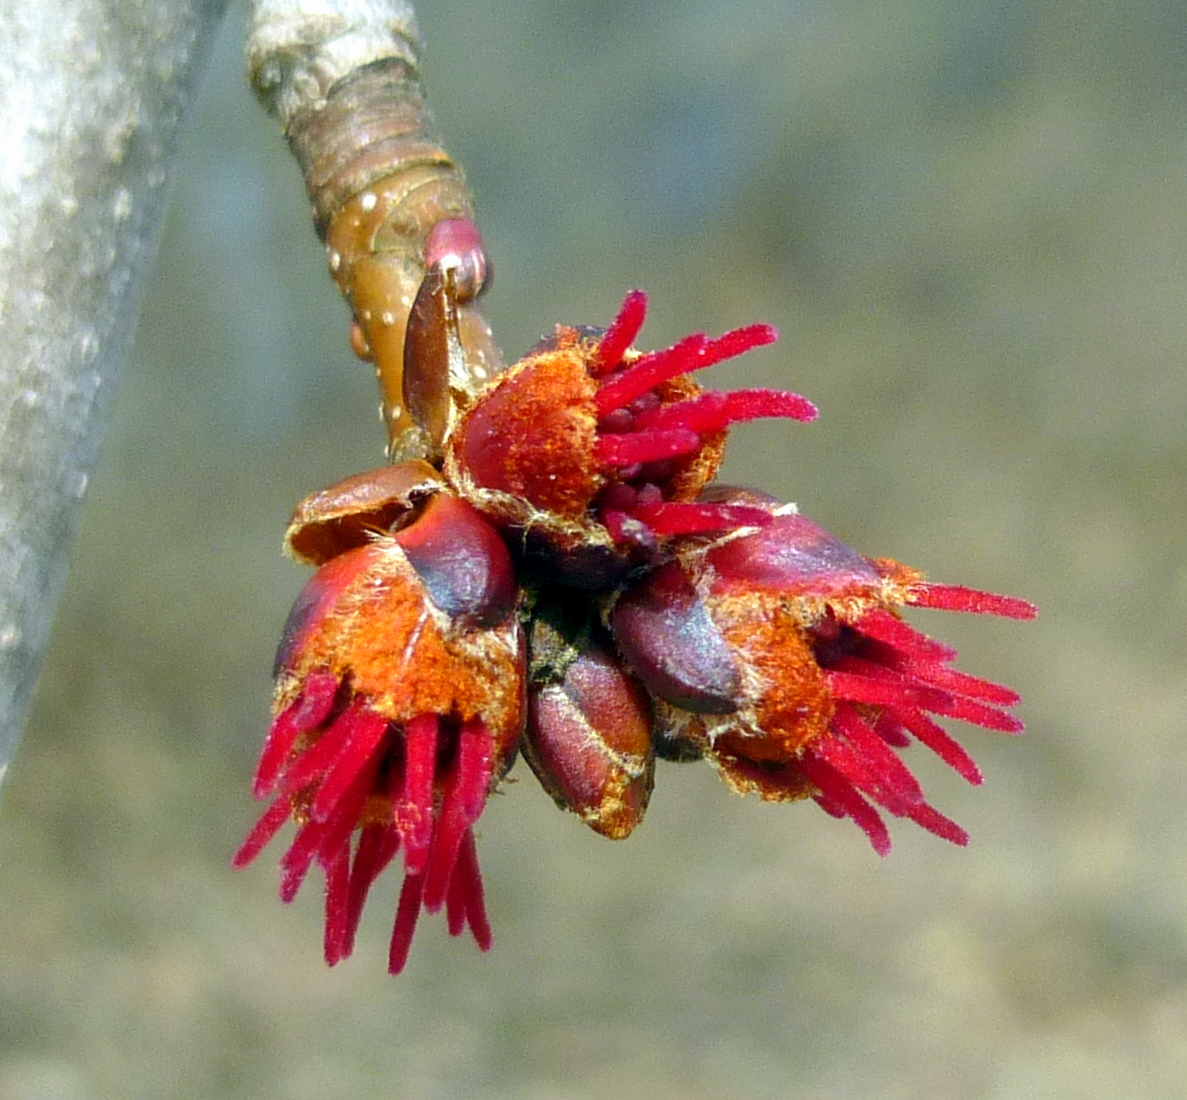 5. Female Red Maple Flowers